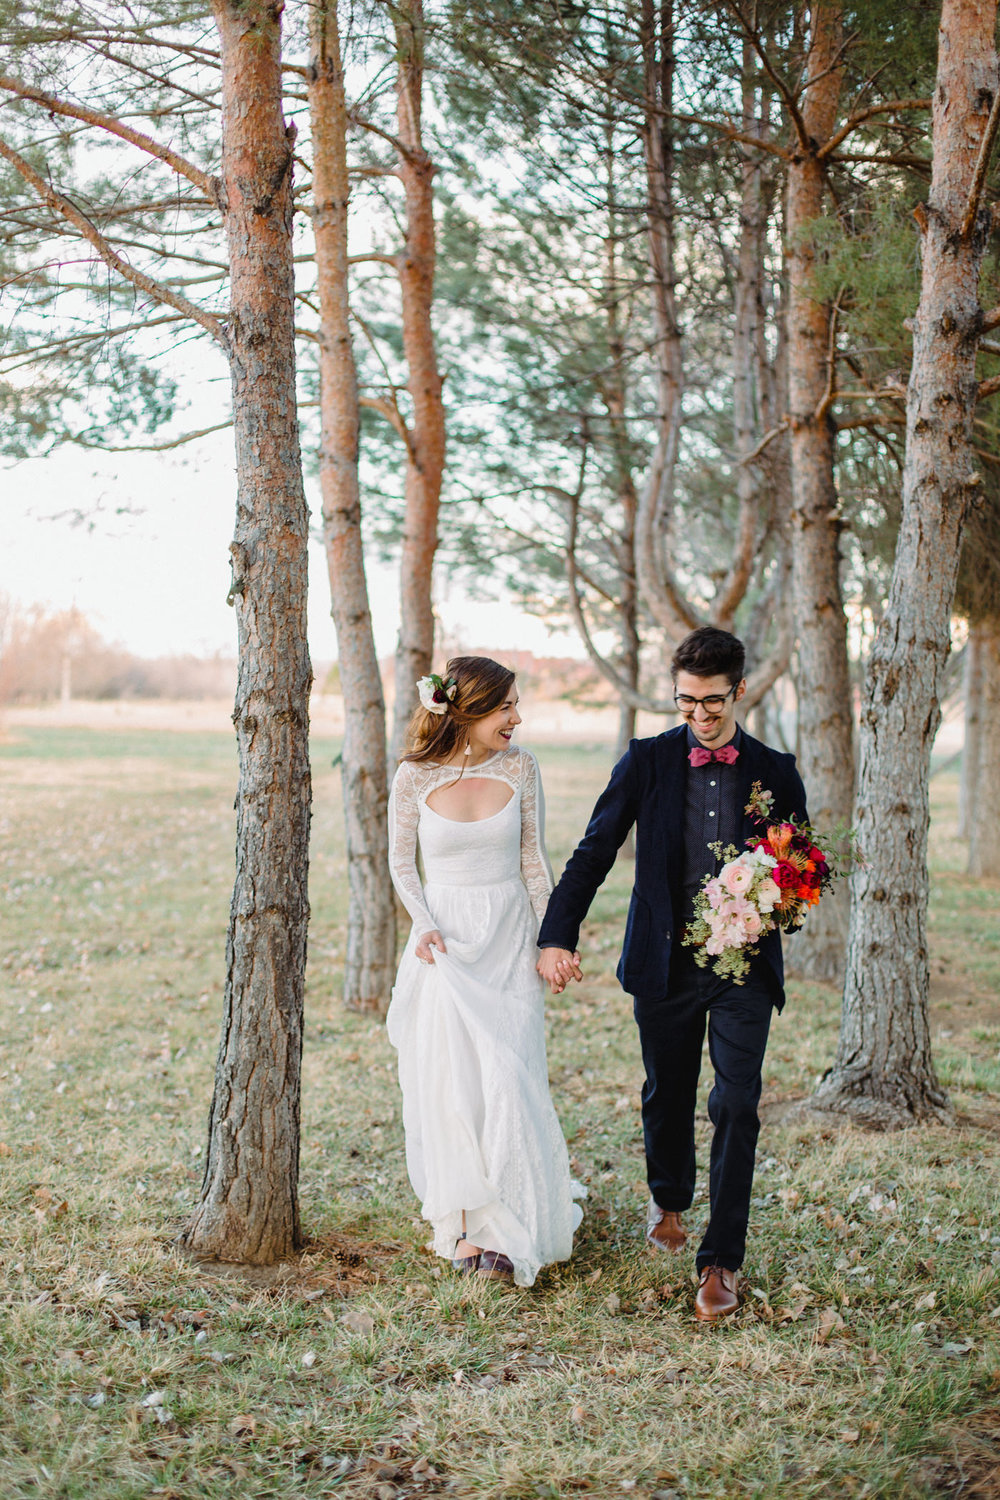 An Ethical Wedding for the Mindful Couple — Pure Lee Photography